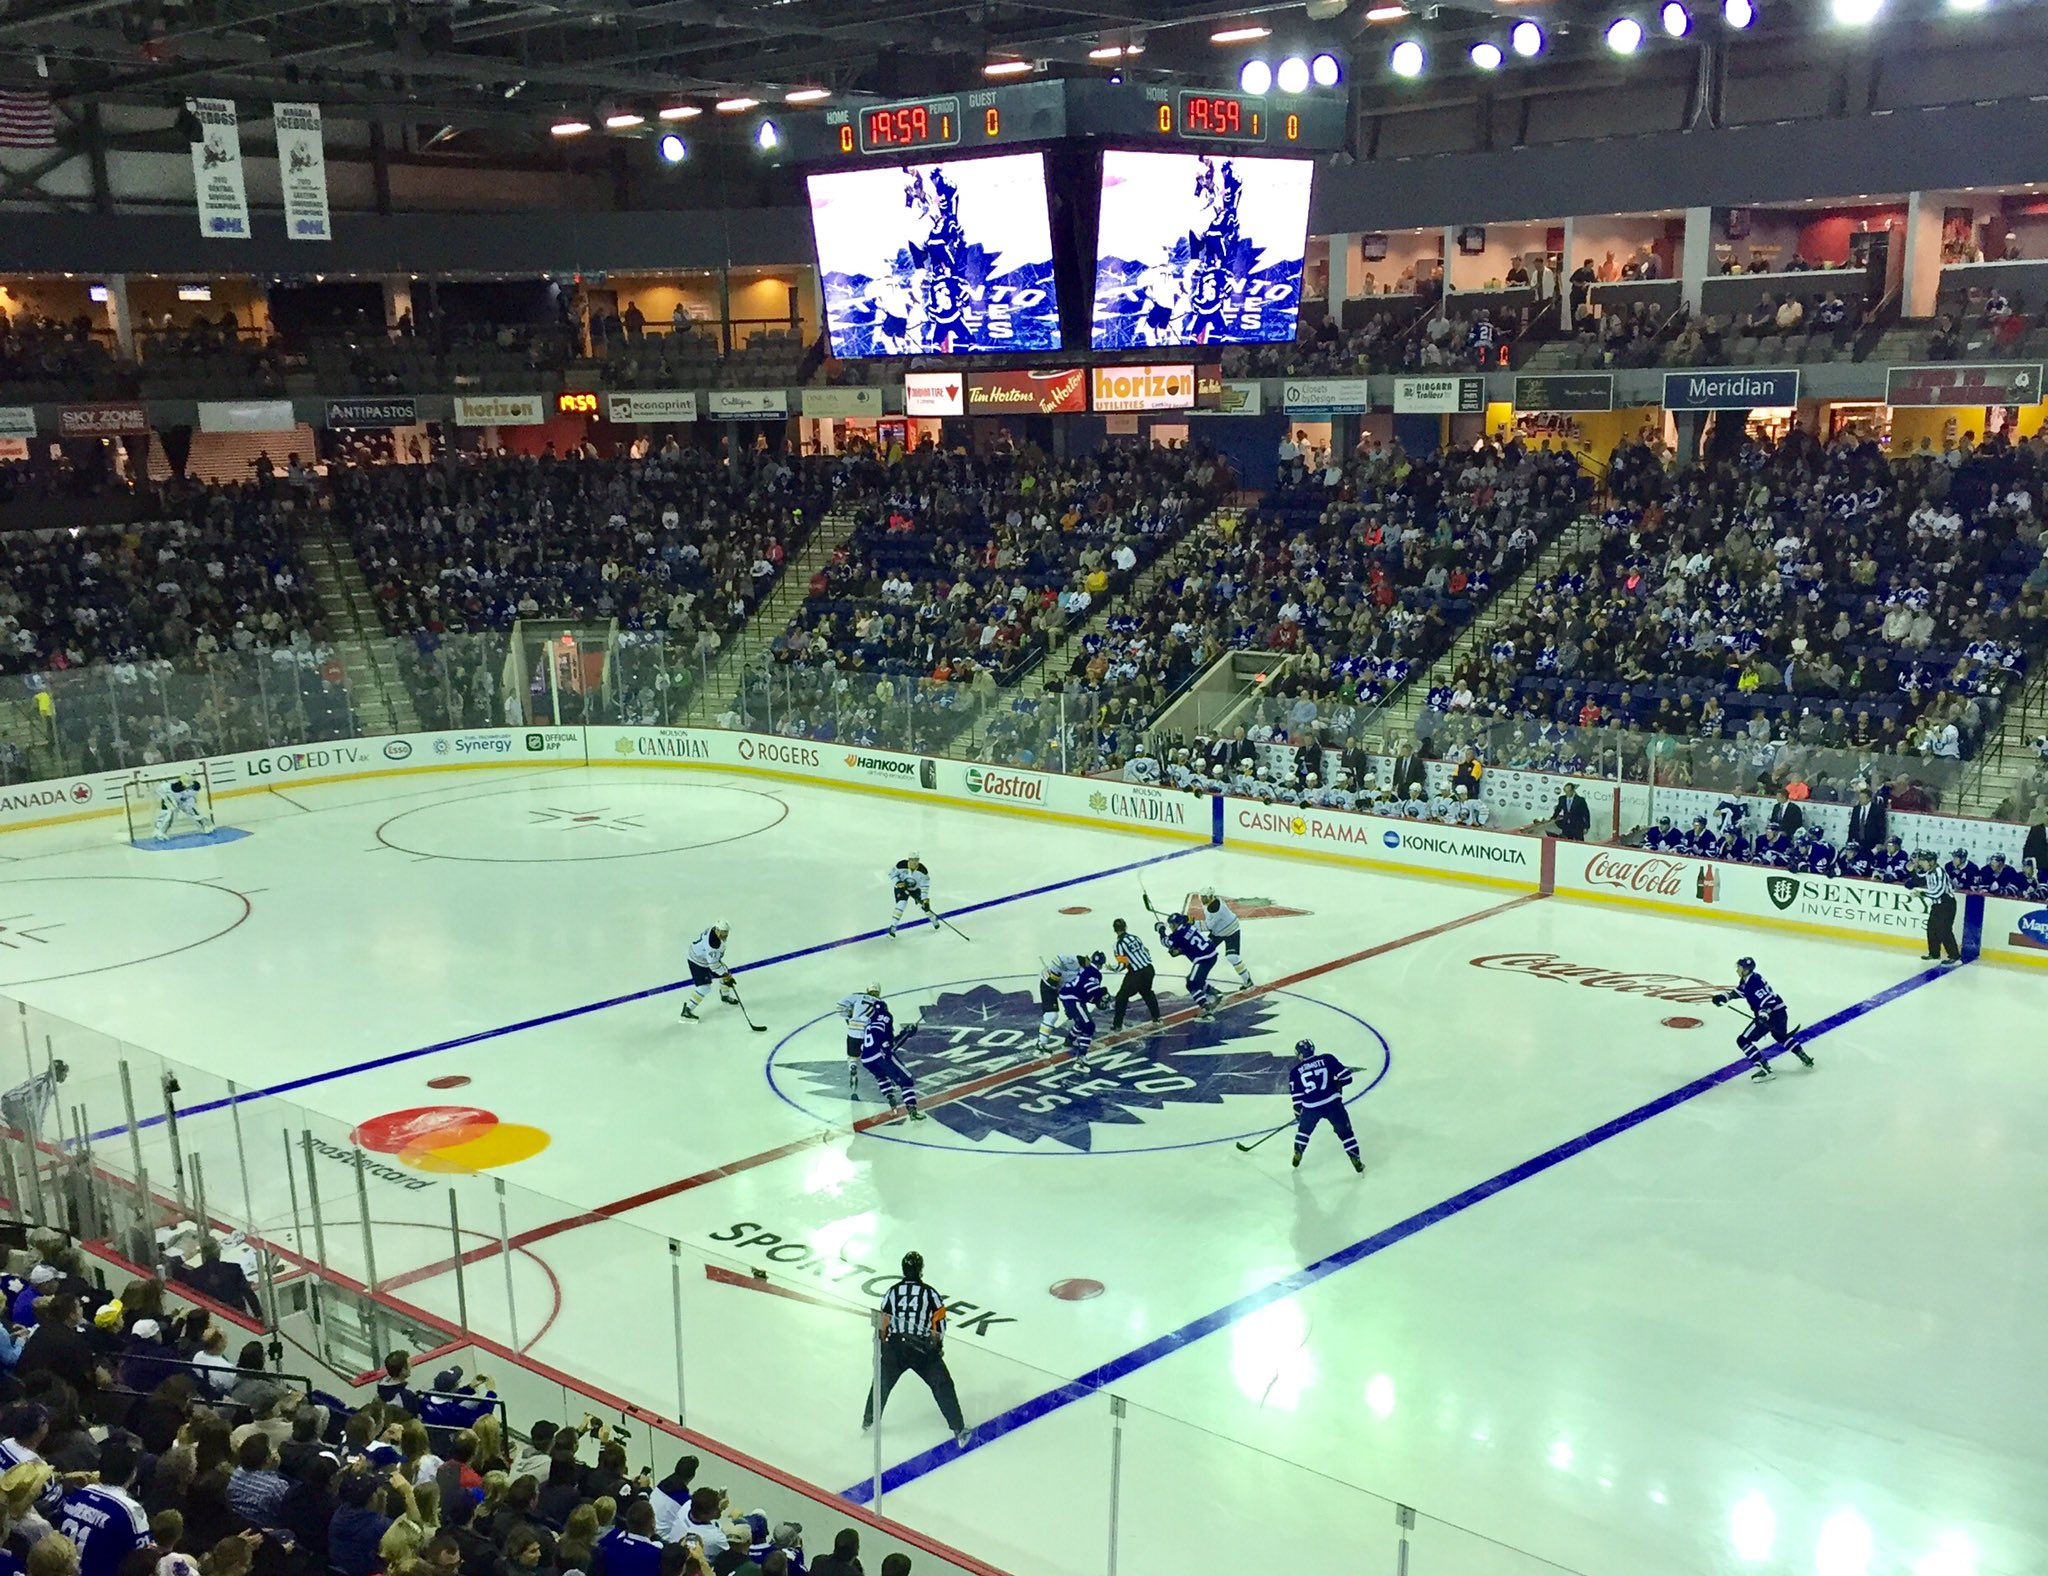 The Sabres made their debut in Meridian Centre against the Maple Leafs. (Photo by John Vogl)